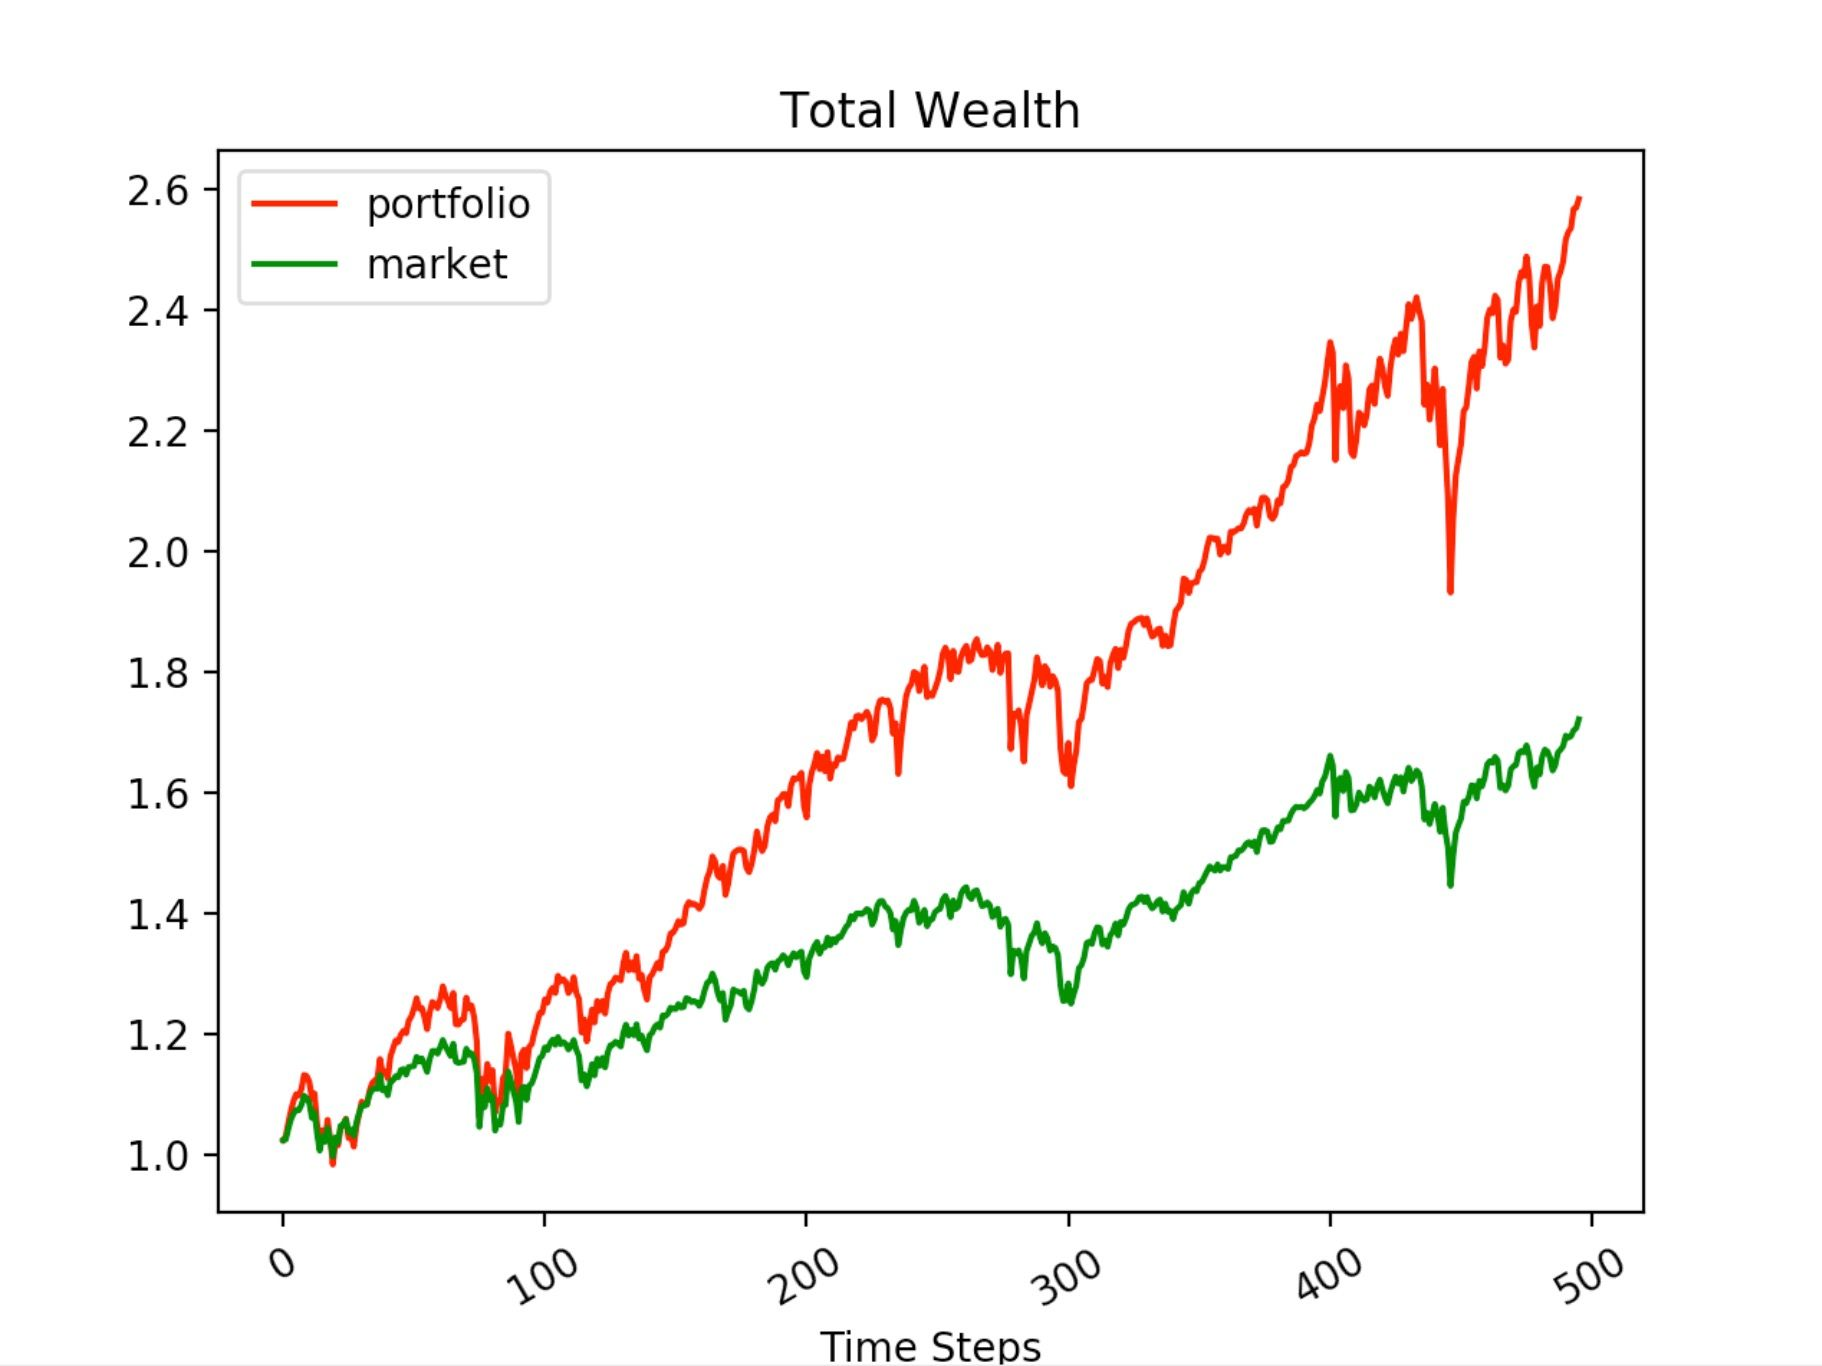 Figure 1 Q-learning result (left) vs DDPG result (right): Portfolio value vs market value without cash installment and adjust weights daily